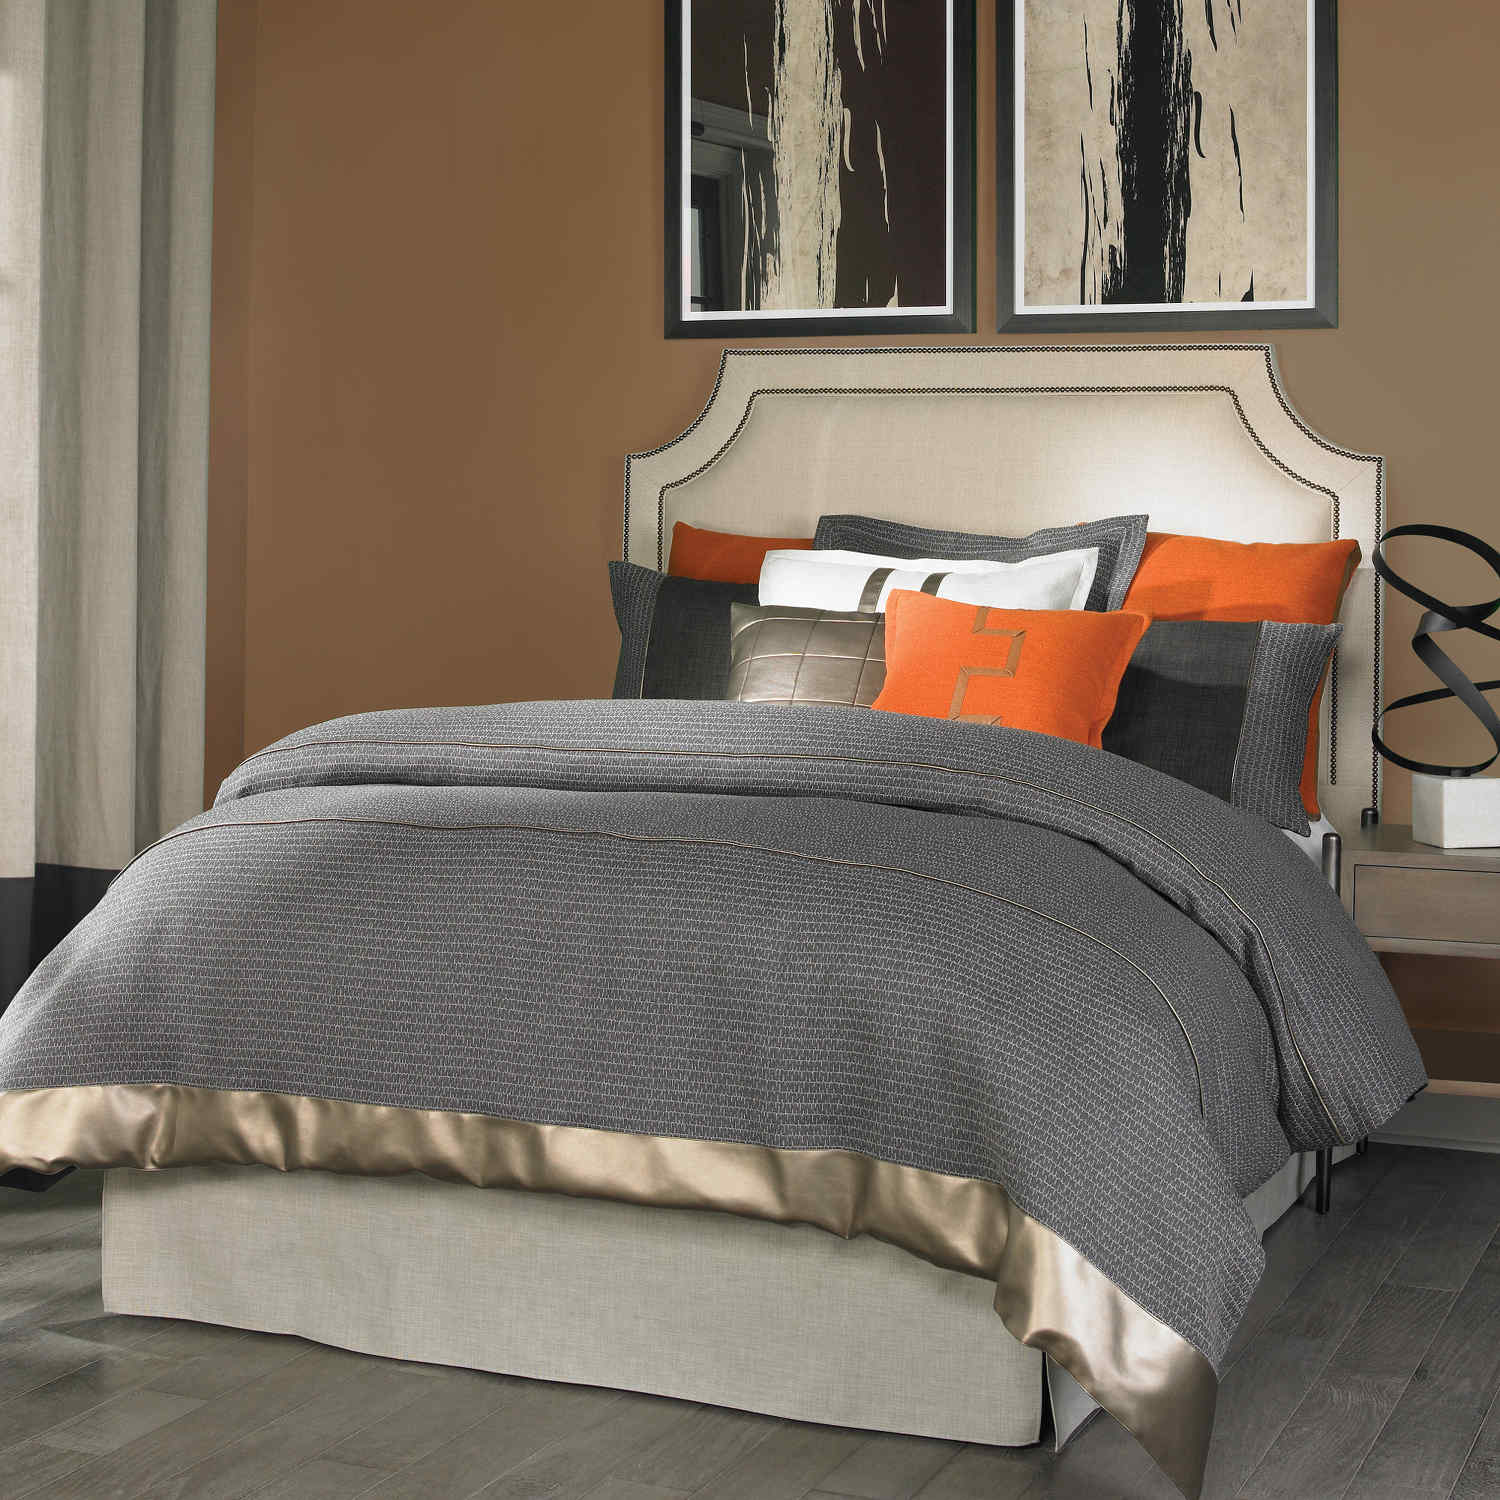 wildcat territory bedding eli collection -